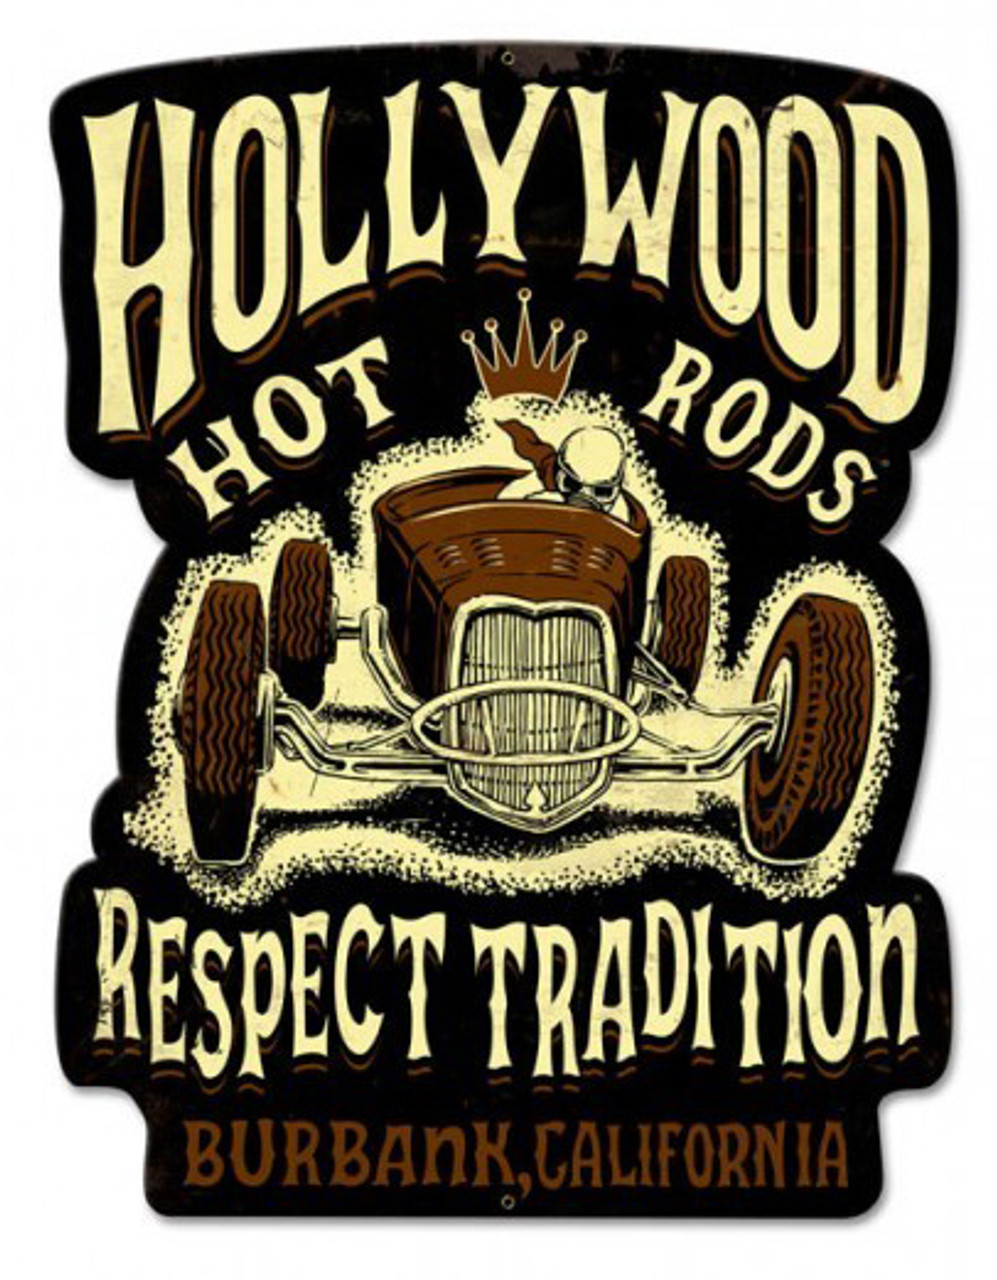 Roadster Respect Metal Sign 24 x 36 Inches